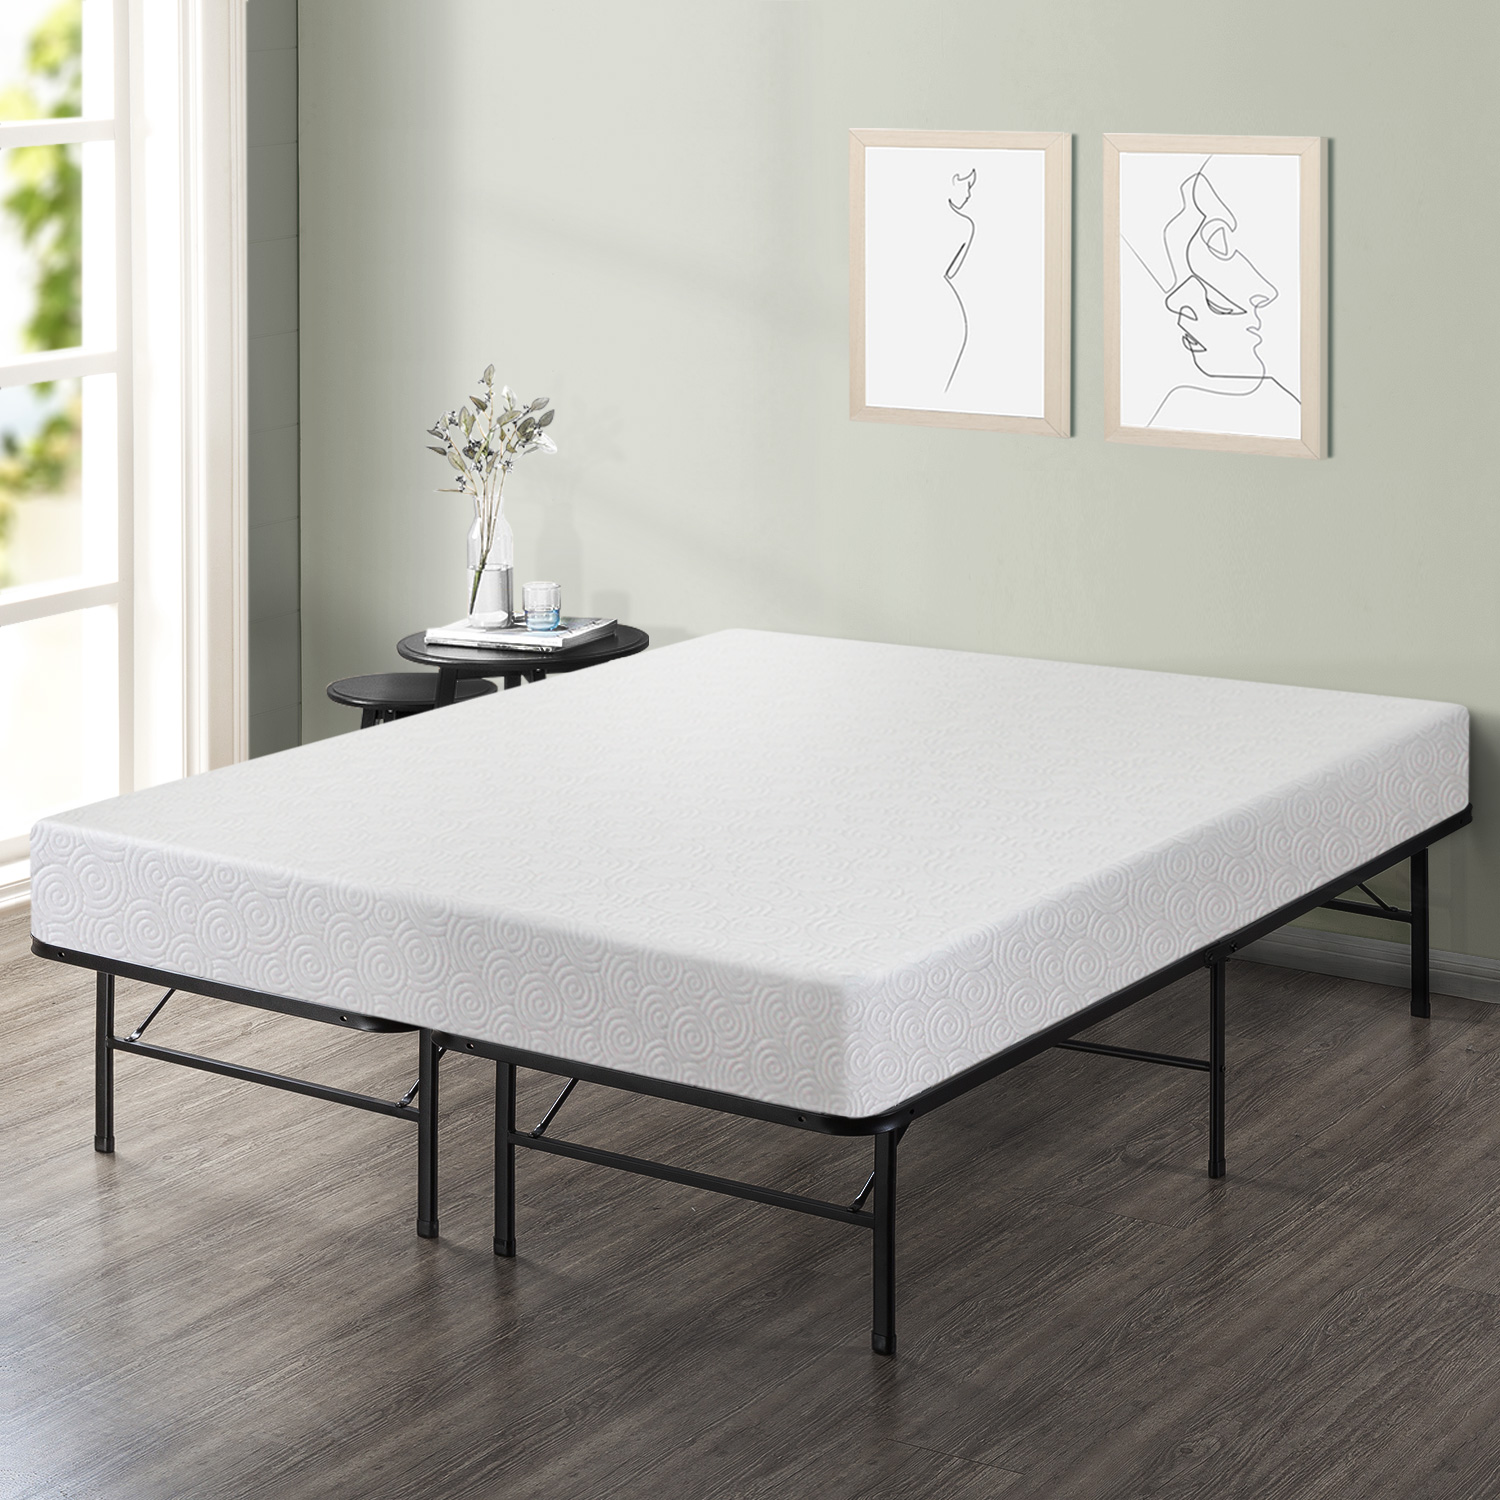 Best Price Mattress 7 Inch Gel Memory Foam Mattress and Innovated Platform Metal Bed Frame Set, Multiple Sizes